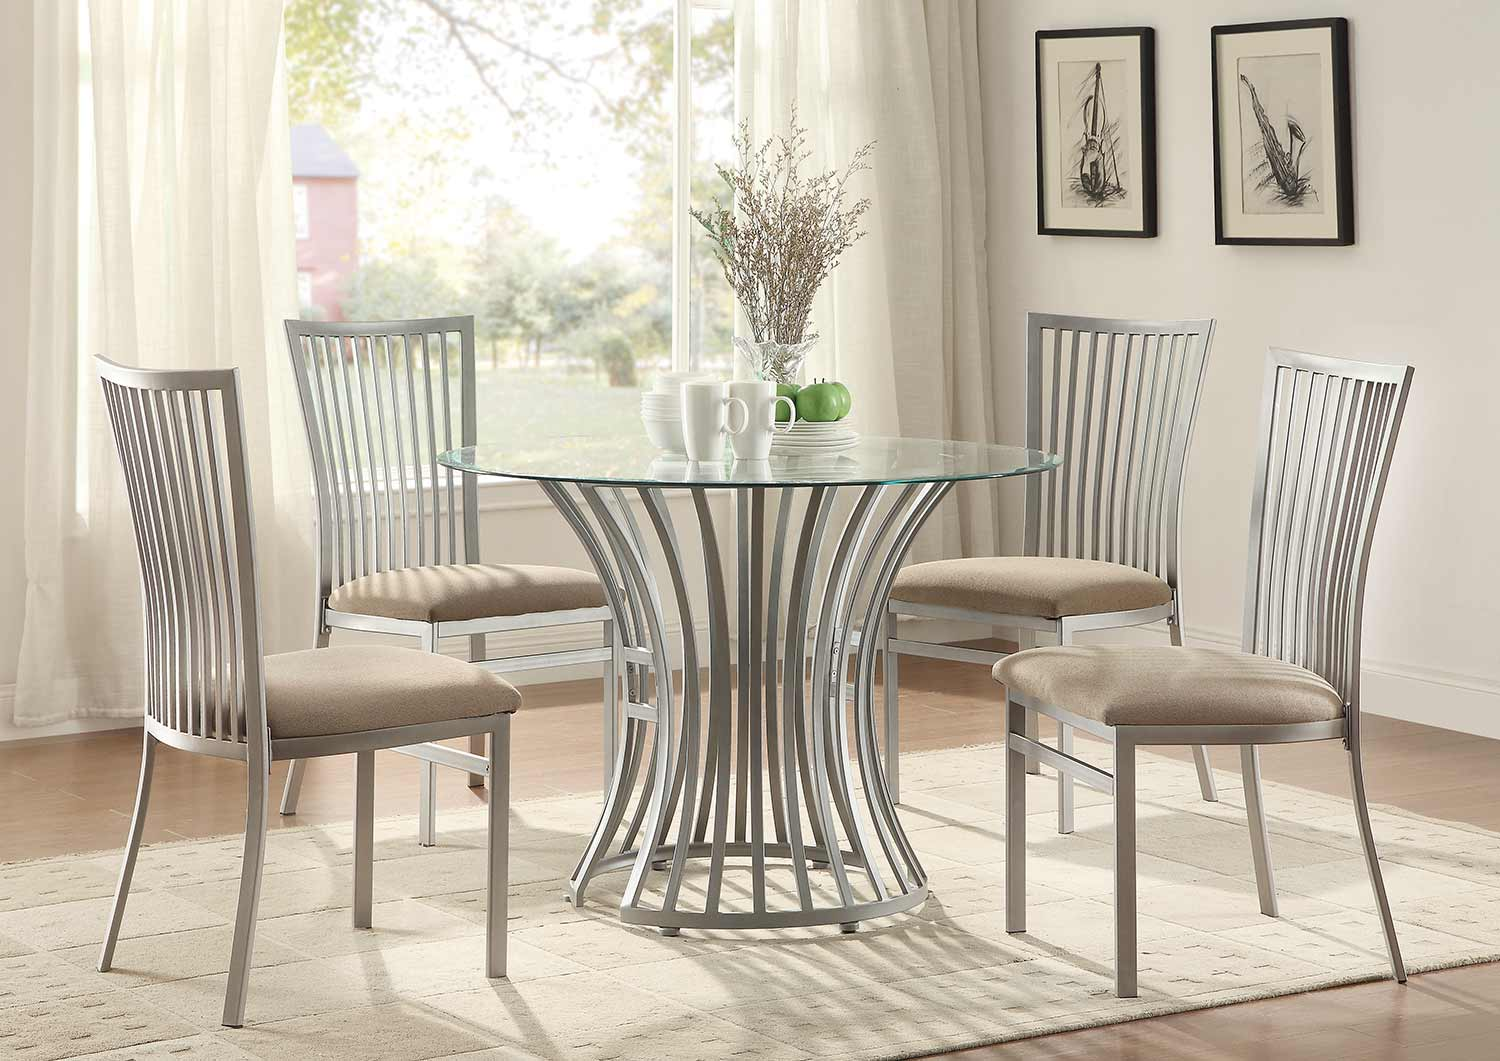 Homelegance Sodus Dining Set - Gunpowder Metal